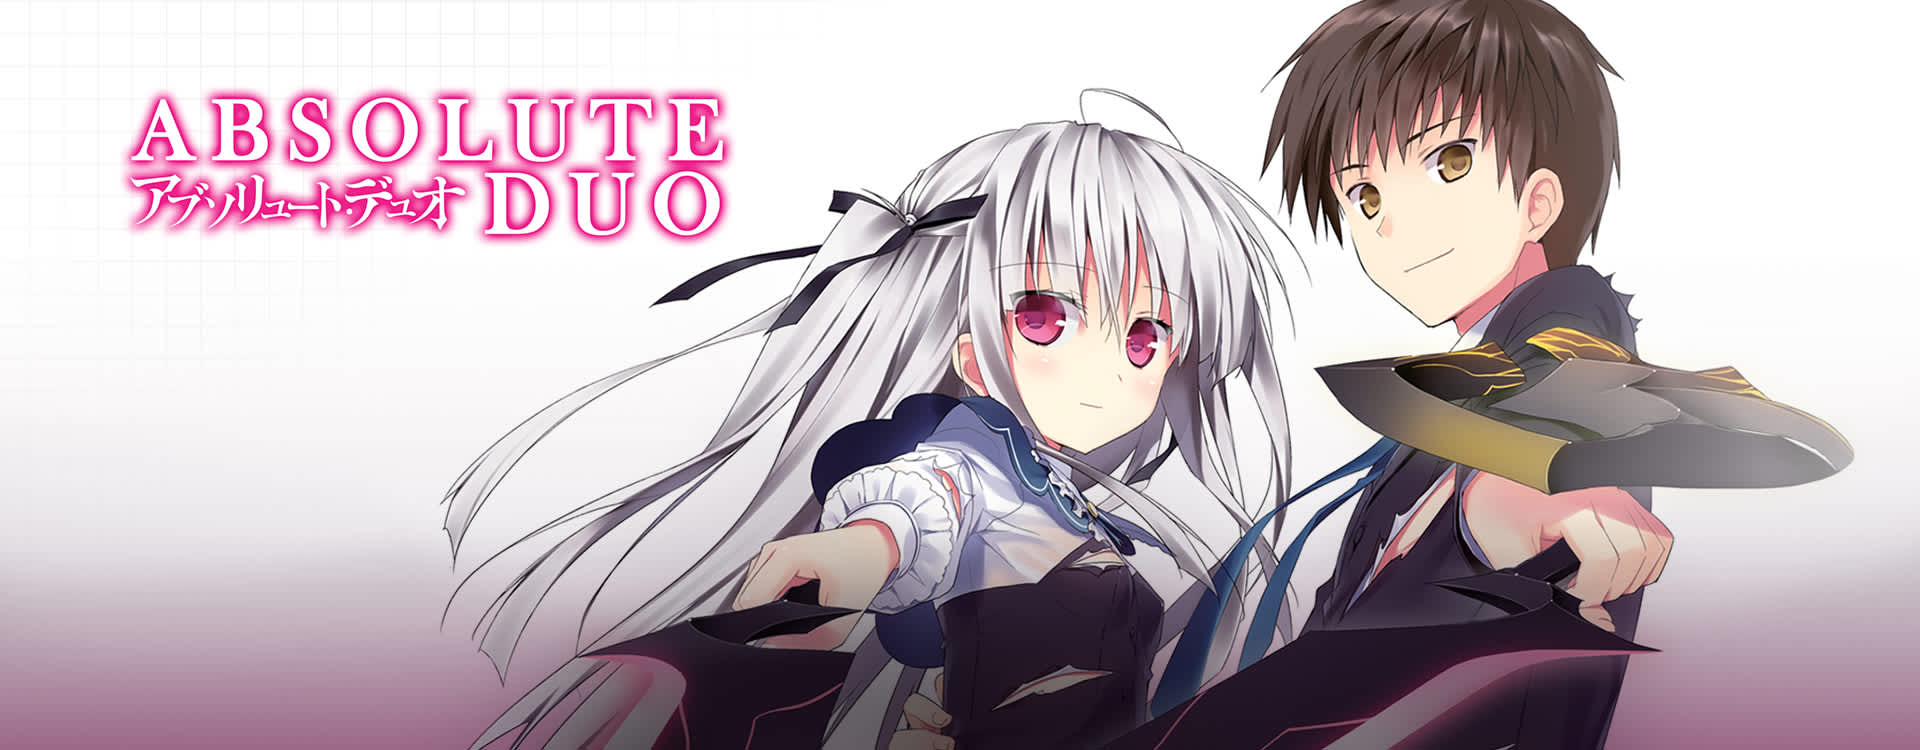 Watch Absolute Duo Sub Dub Action Adventure Fan Service Anime